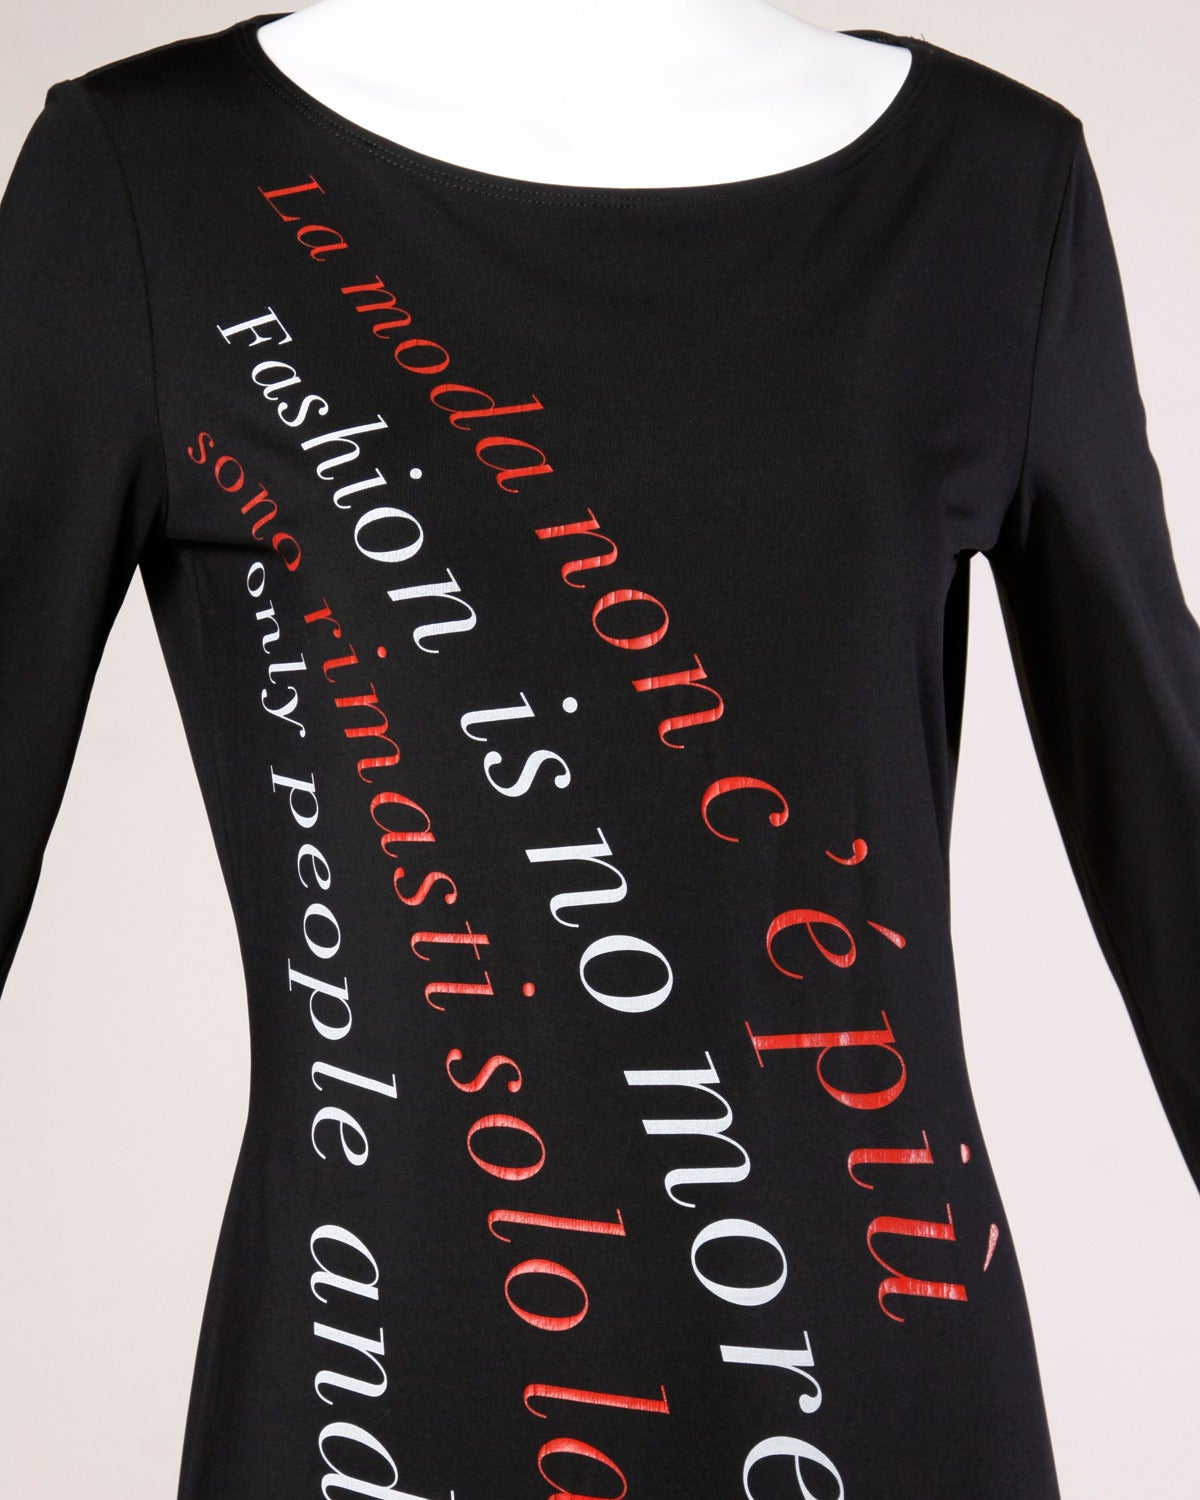 """Vintage black Moschino maxi dress with red and white graphic written in both Italian and English; """"Fashion is no more... only people and clothes remain!"""". Long sleeves and side slit.  Details:  Unlined No Closure/ Fabric Contains"""